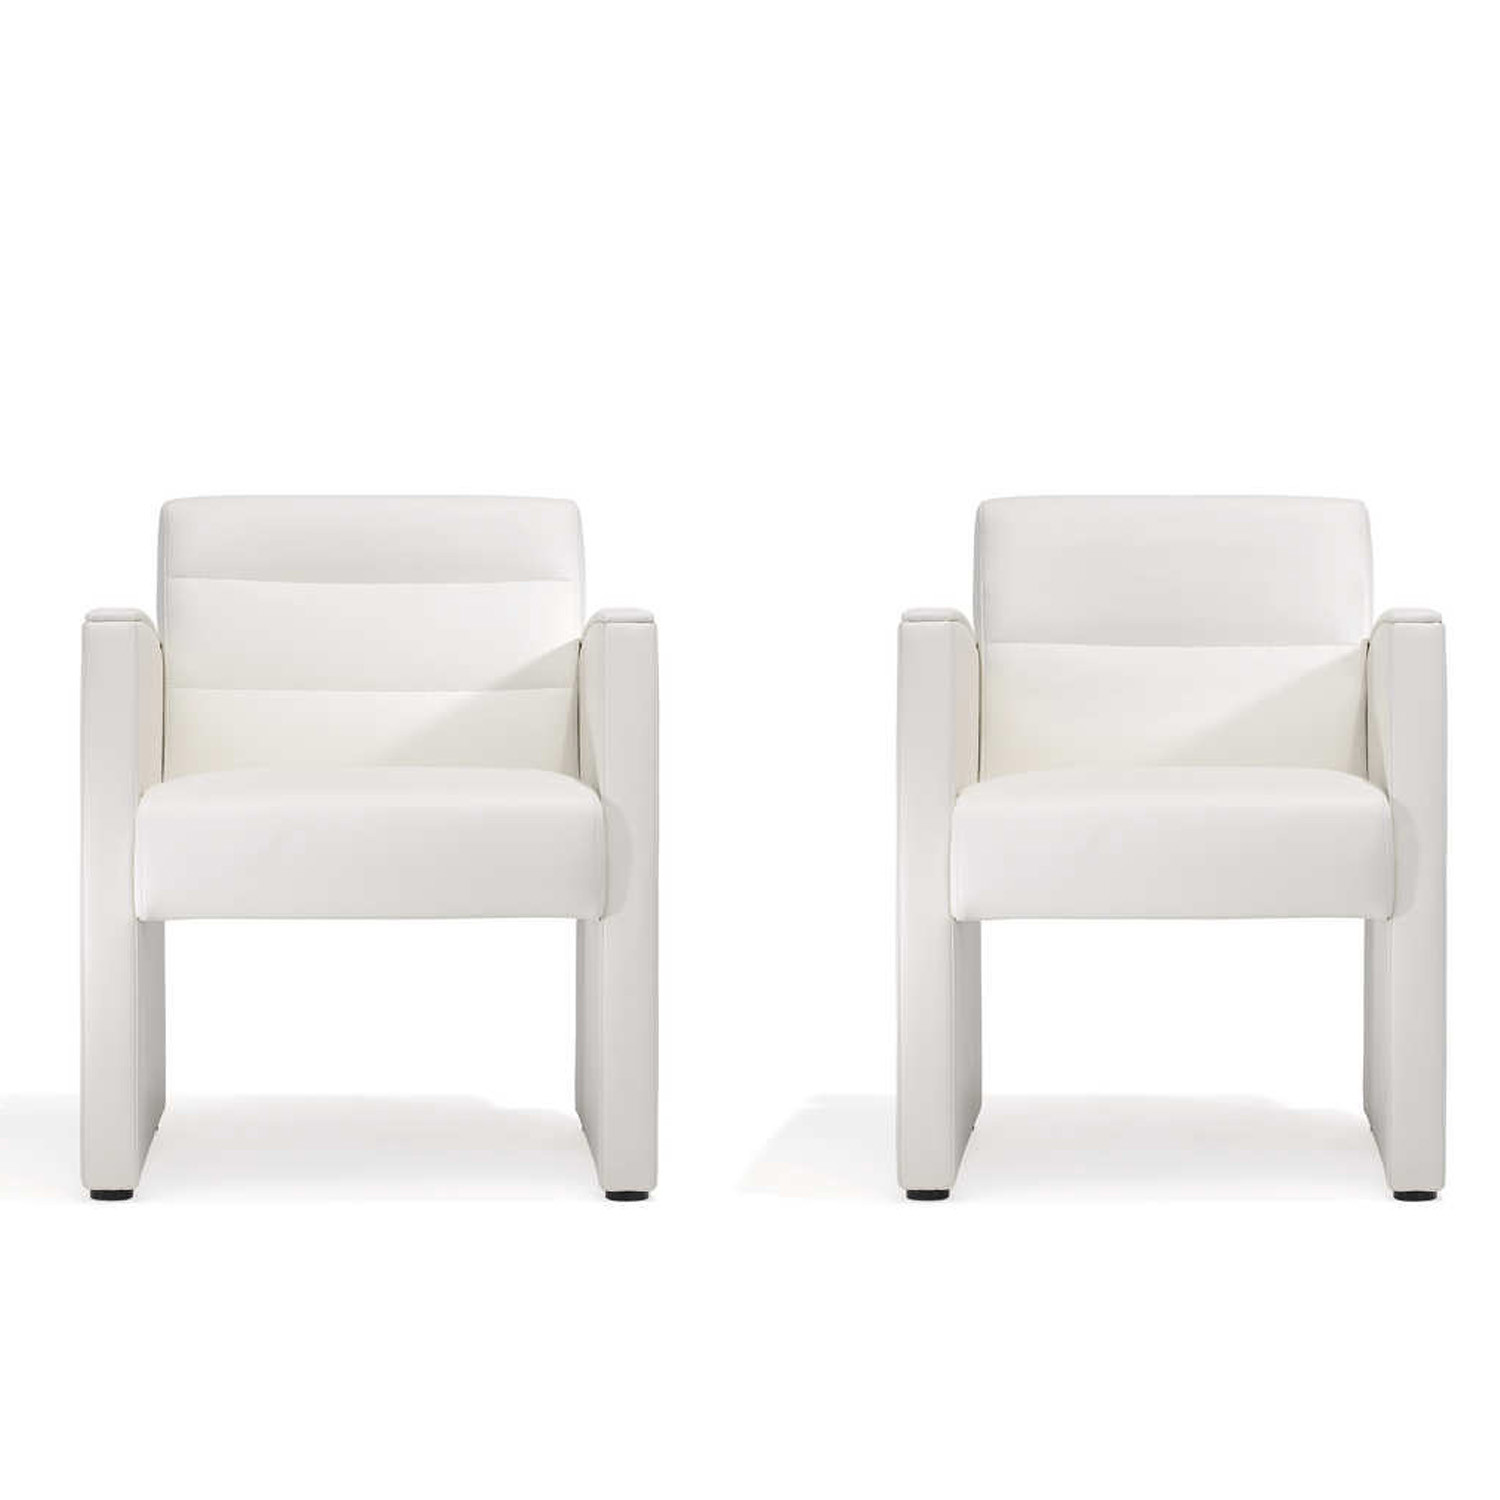 5050 Armchairs with completely upholstered side parts